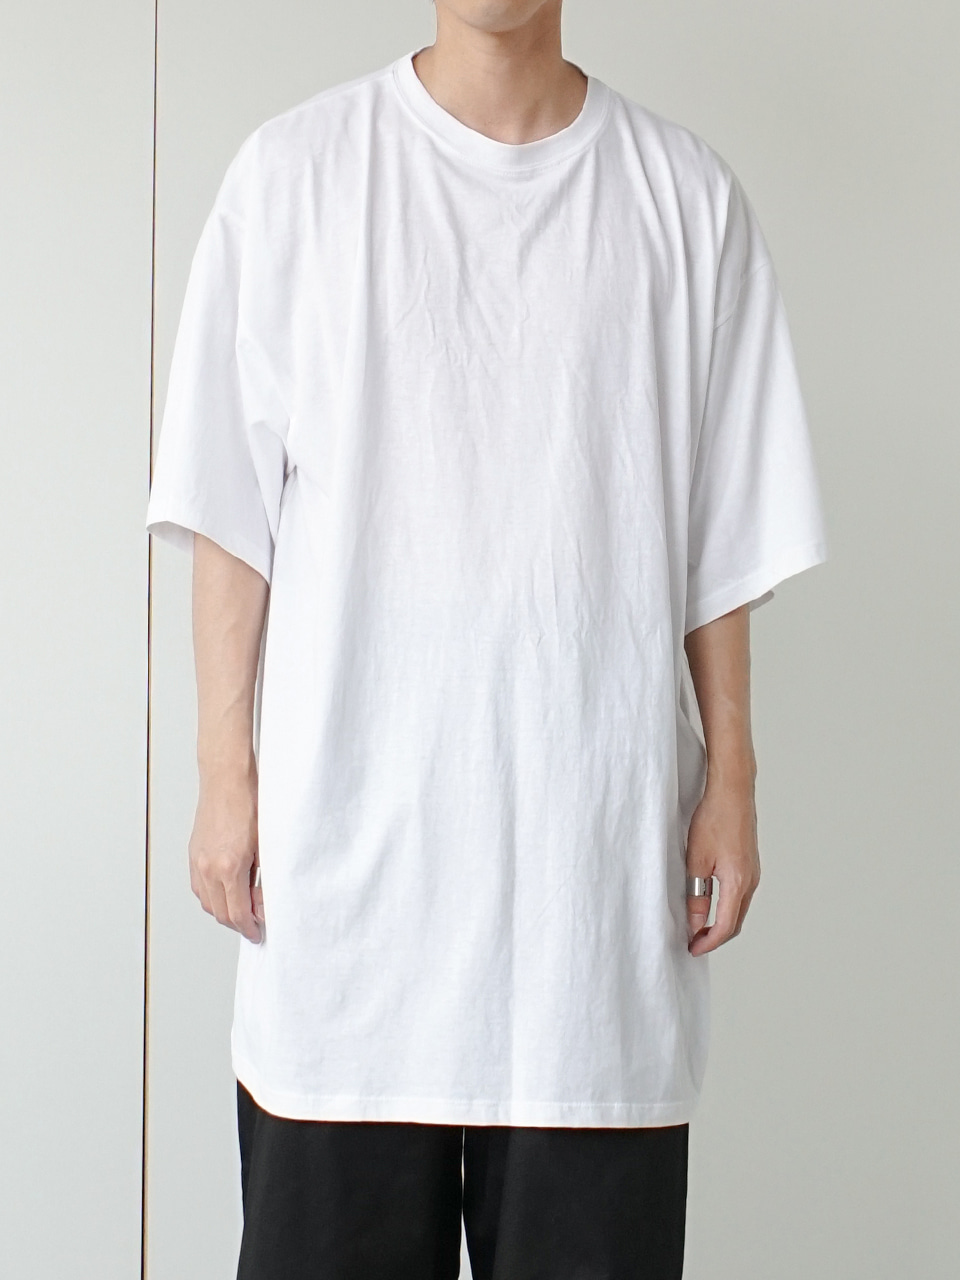 Mation Solid Half Tee (4color)